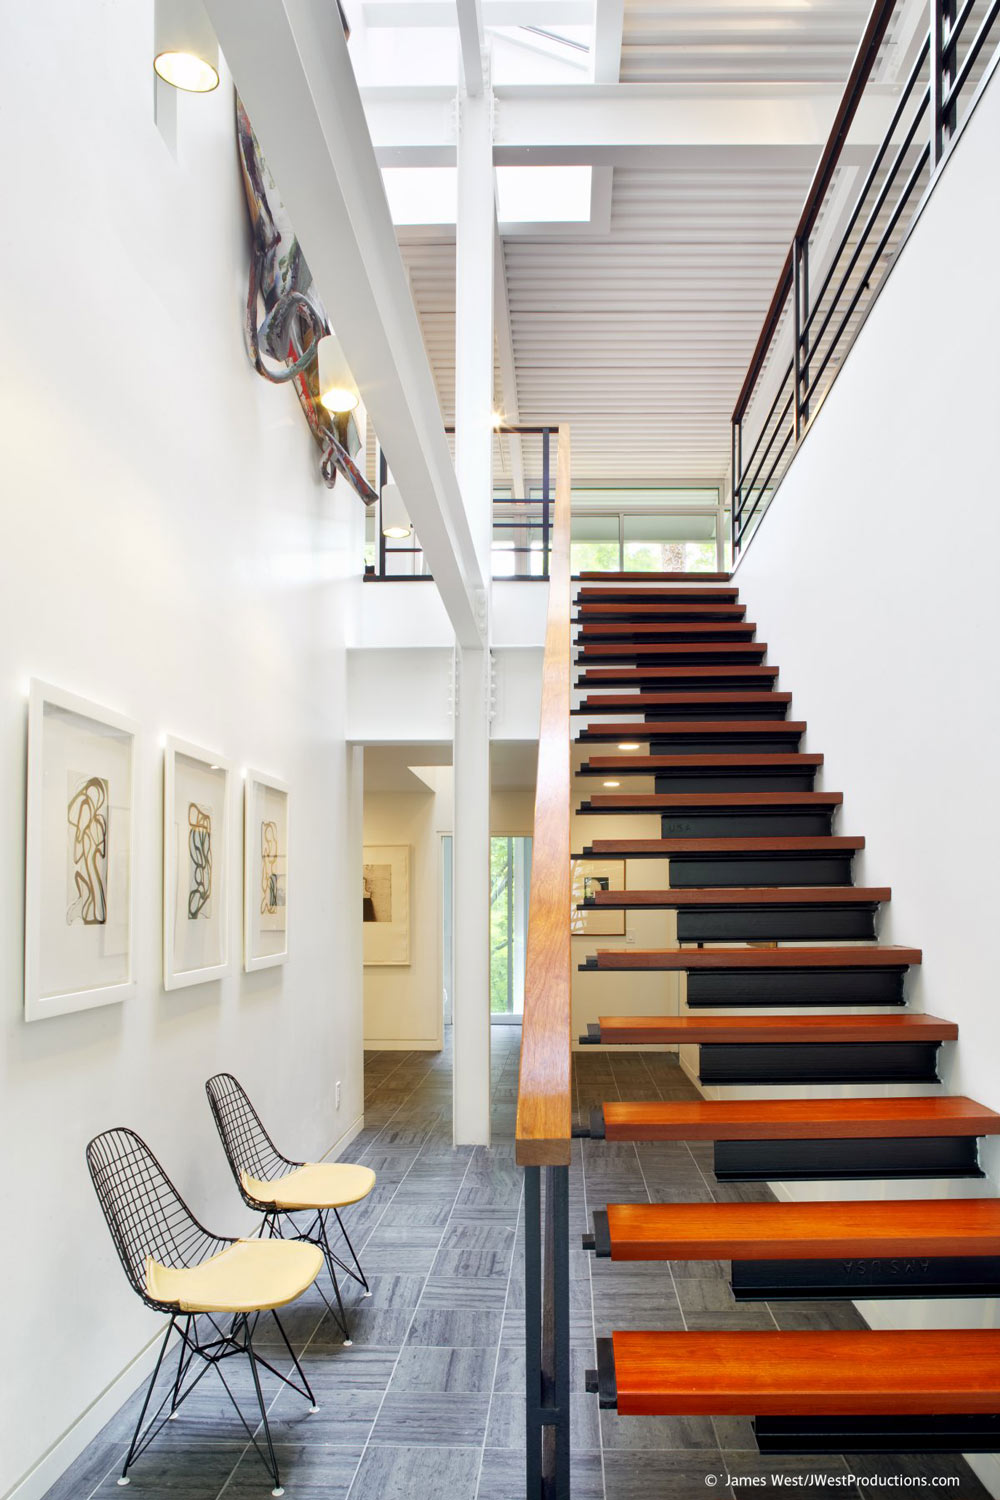 Modern Metal & Wood Stairs, Chiles Residence in Raleigh, North Carolina by Tonic Design + Construction